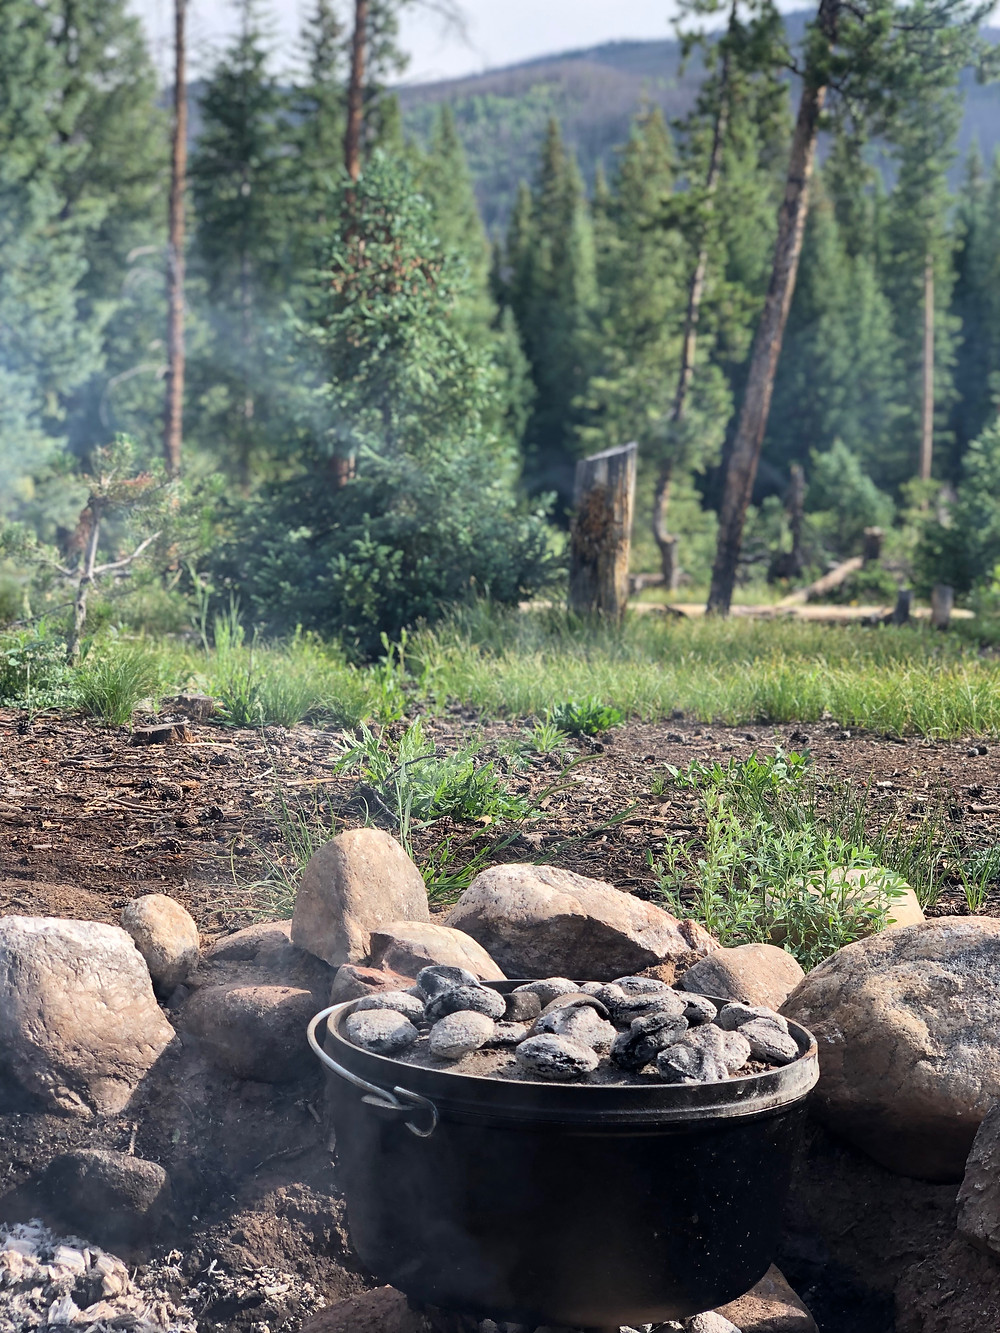 Dutch oven while camping